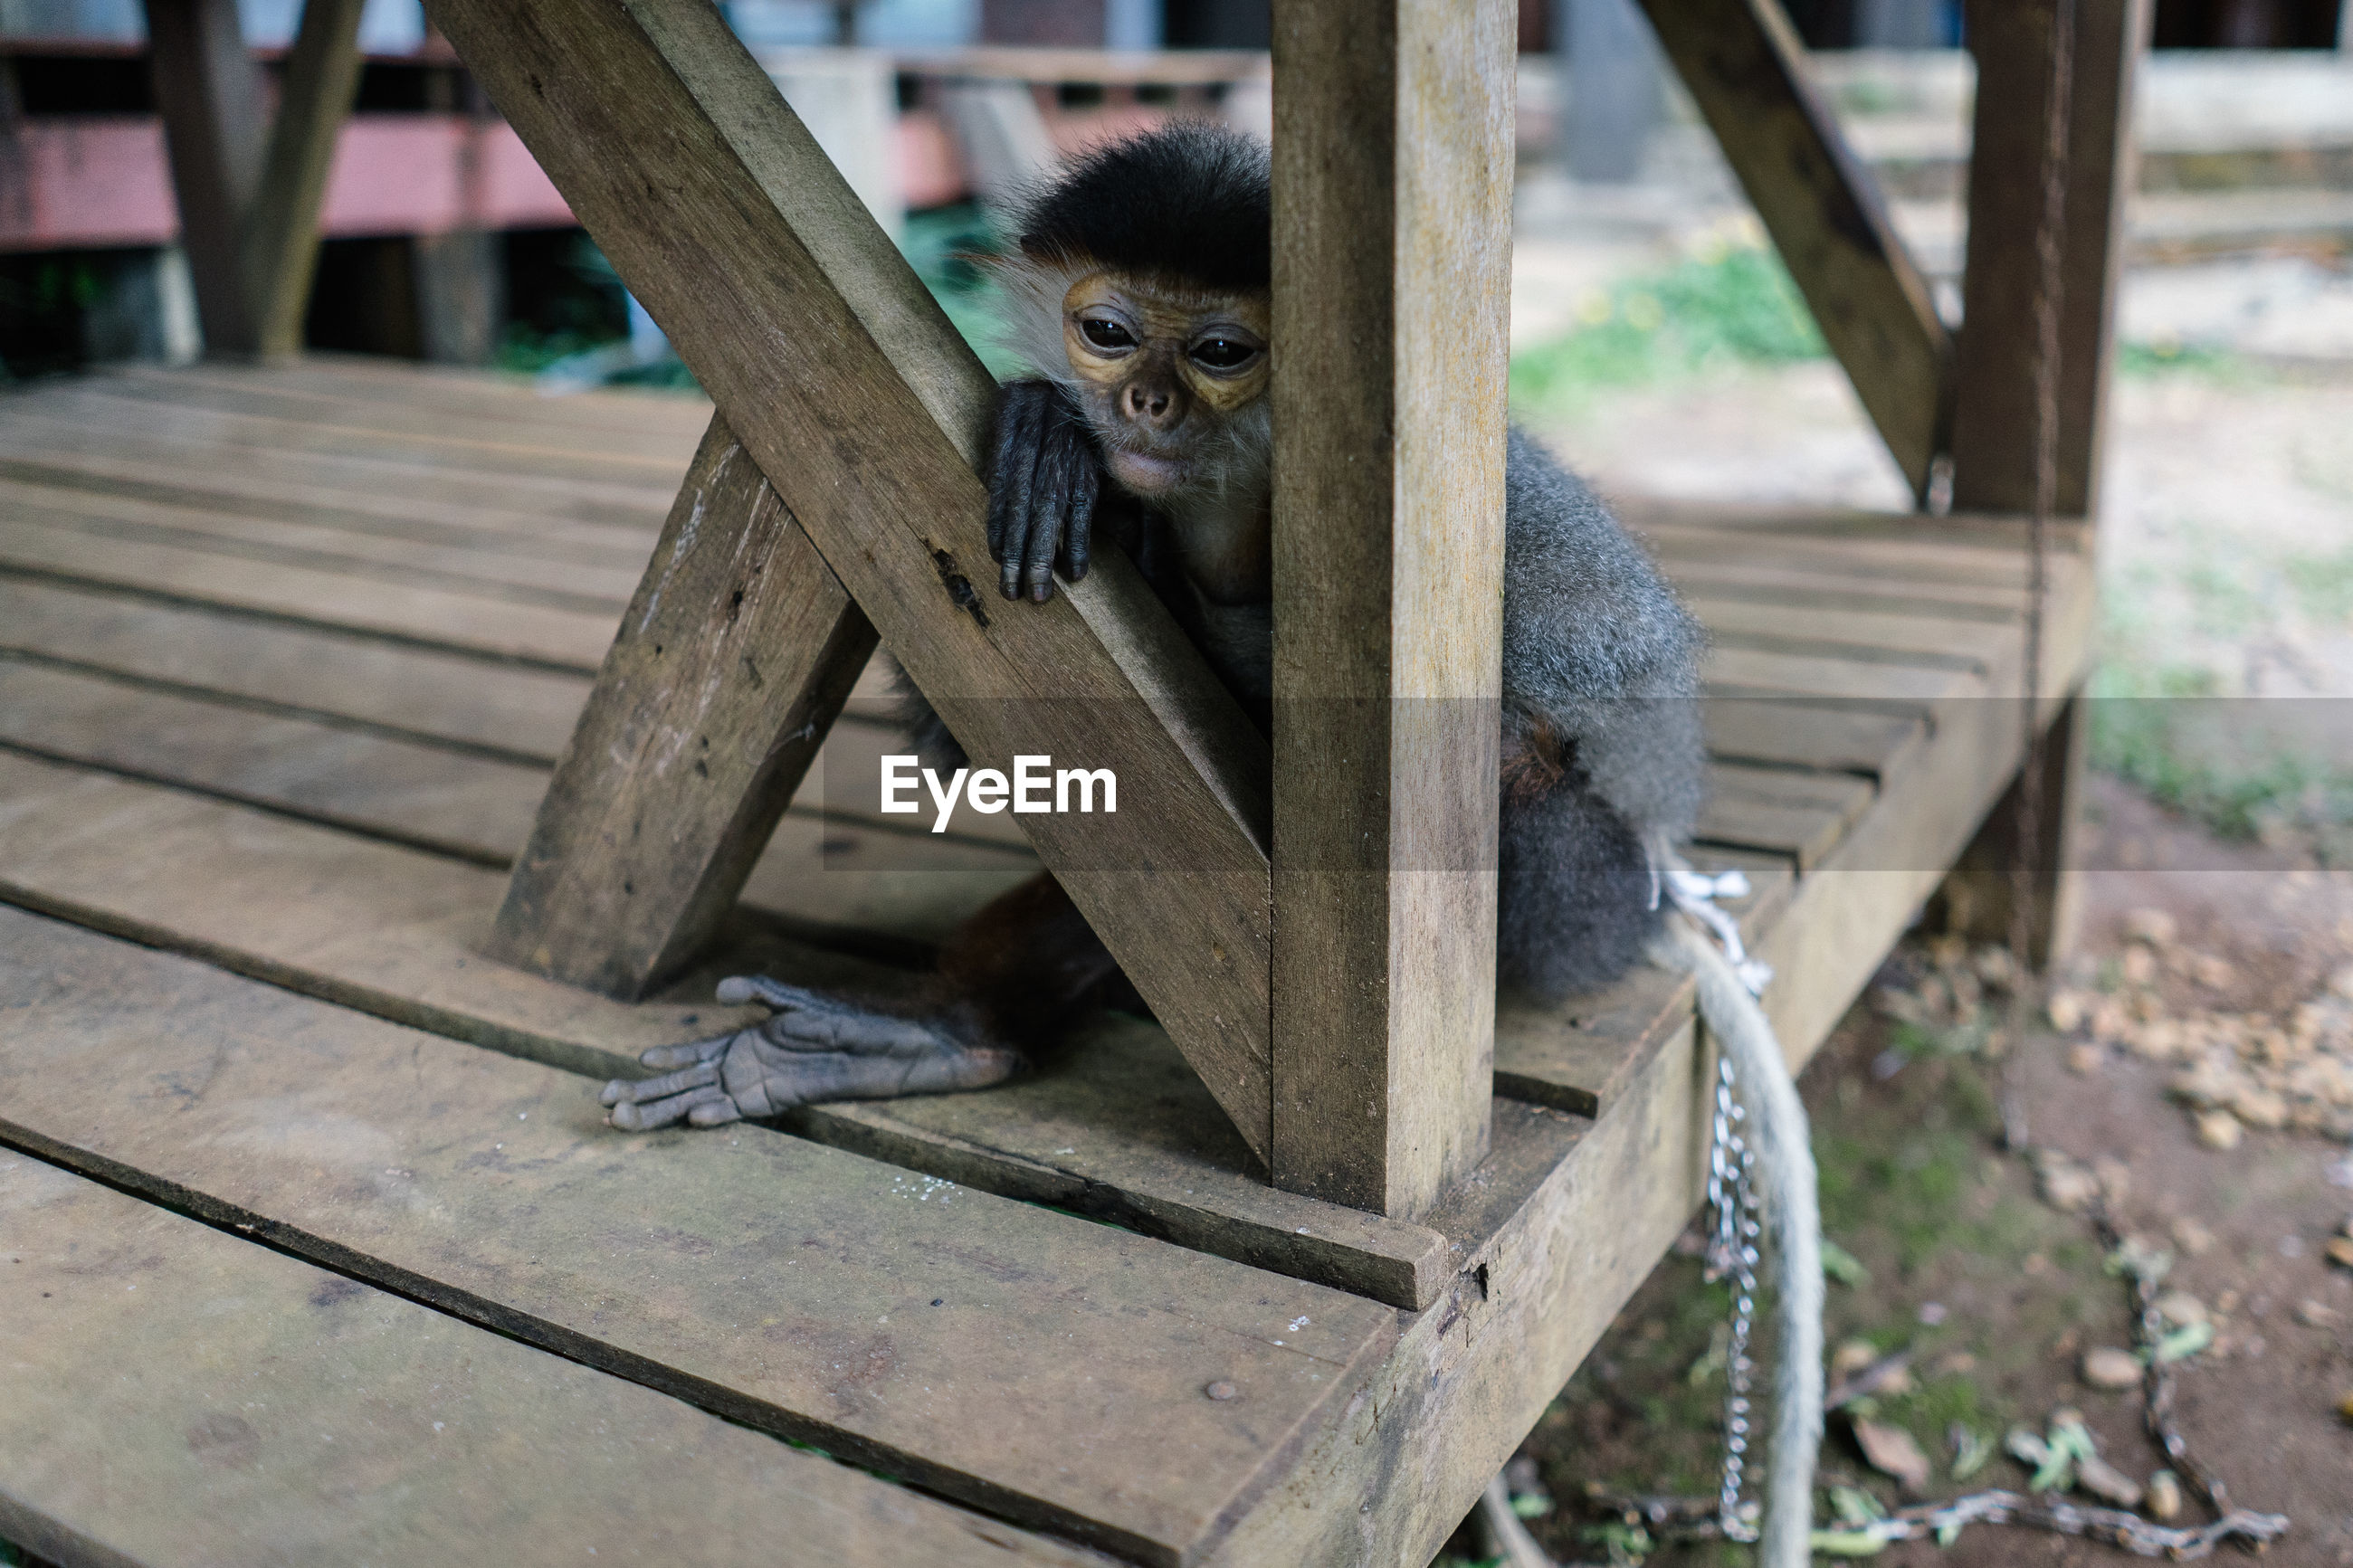 HIGH ANGLE VIEW OF MONKEYS SITTING ON BENCH